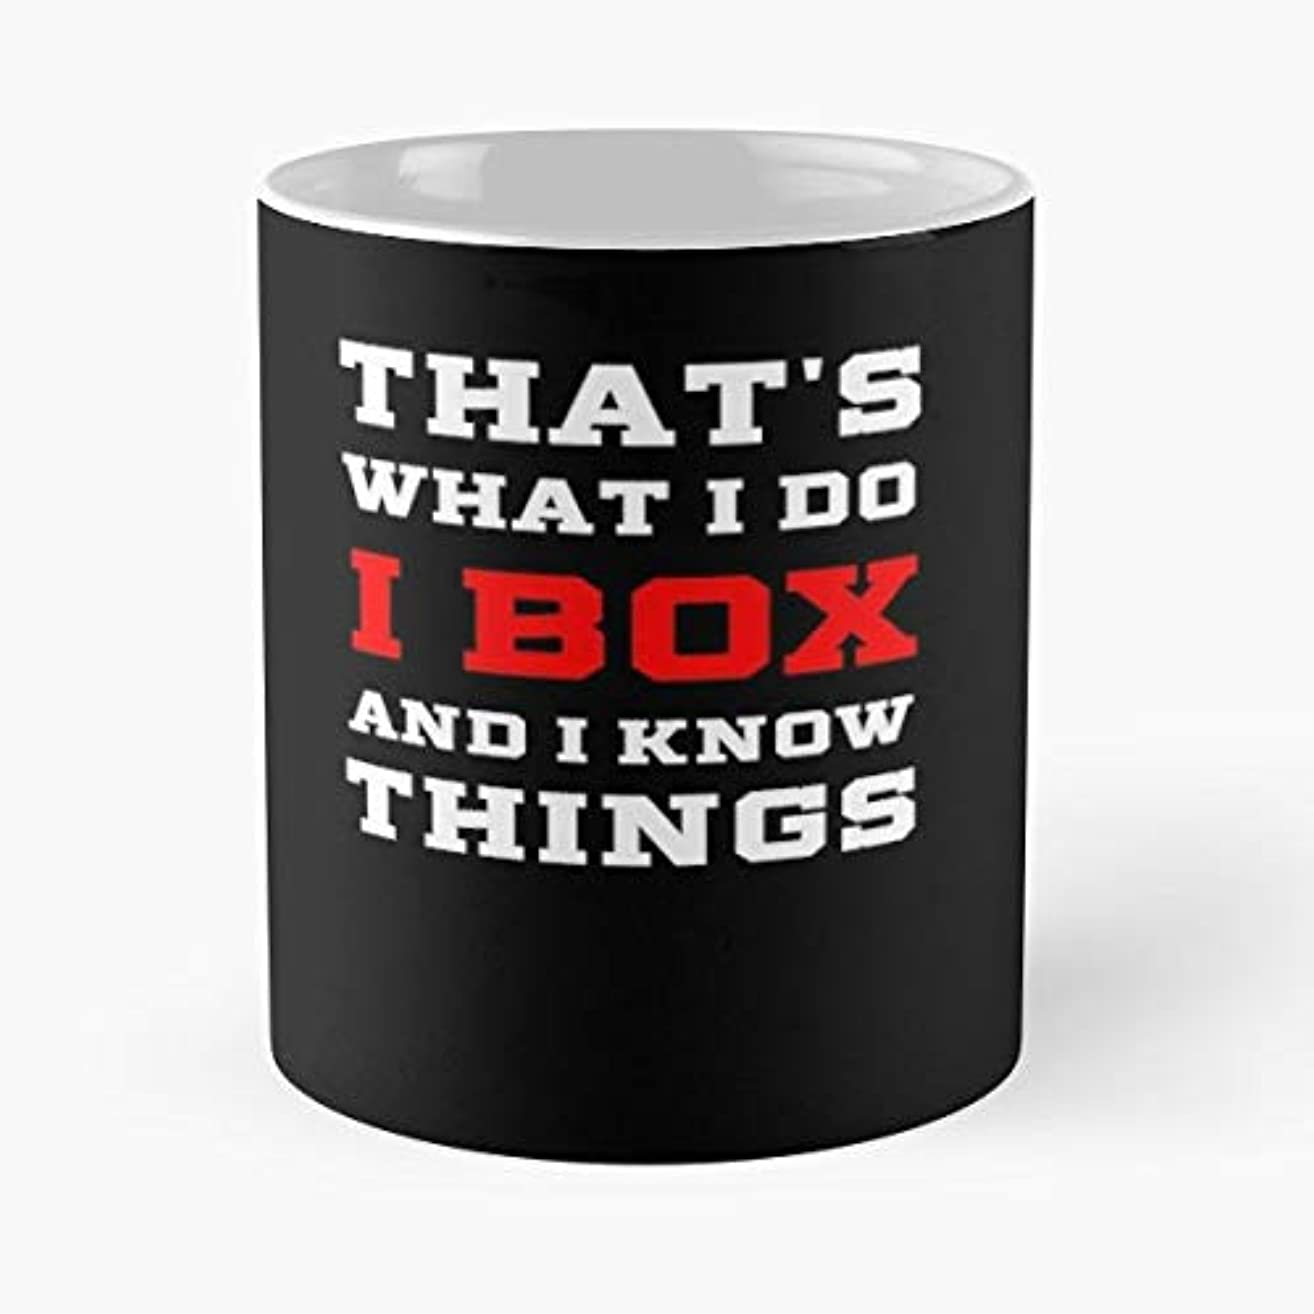 Boxing Boxer Gifts For Men Women - Funny Gifts For Men And Women Gift Coffee Mug Tea Cup White 11 Oz.the Best Holidays.